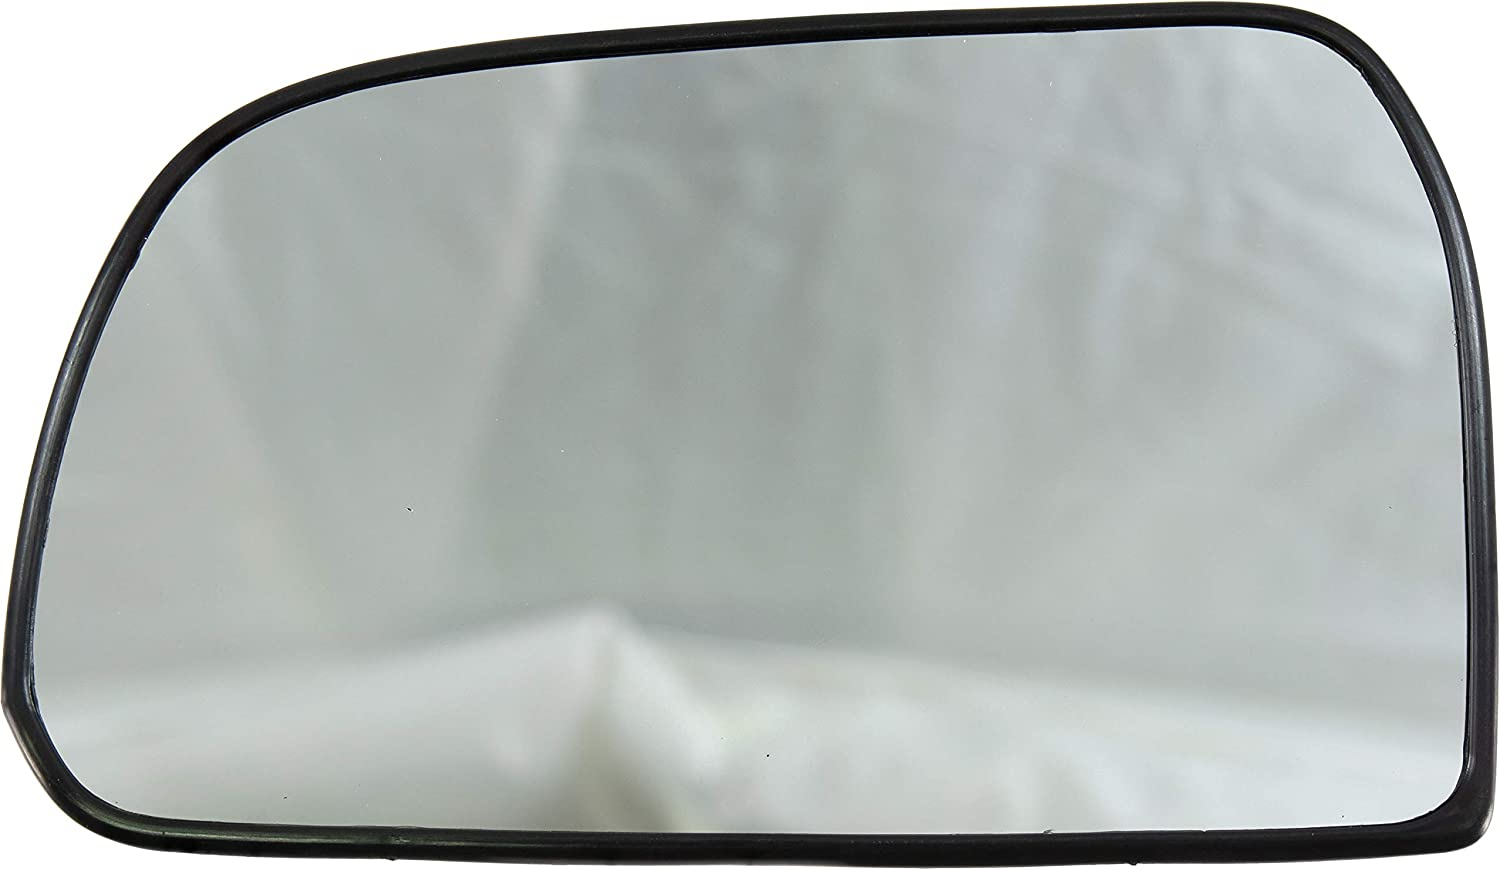 2005-2009 Hyundai Tucson Models With Heat APDTY 67779 Side View Mirror Replacement Glass Fits Left Replaces 876112E100 Driver-Side